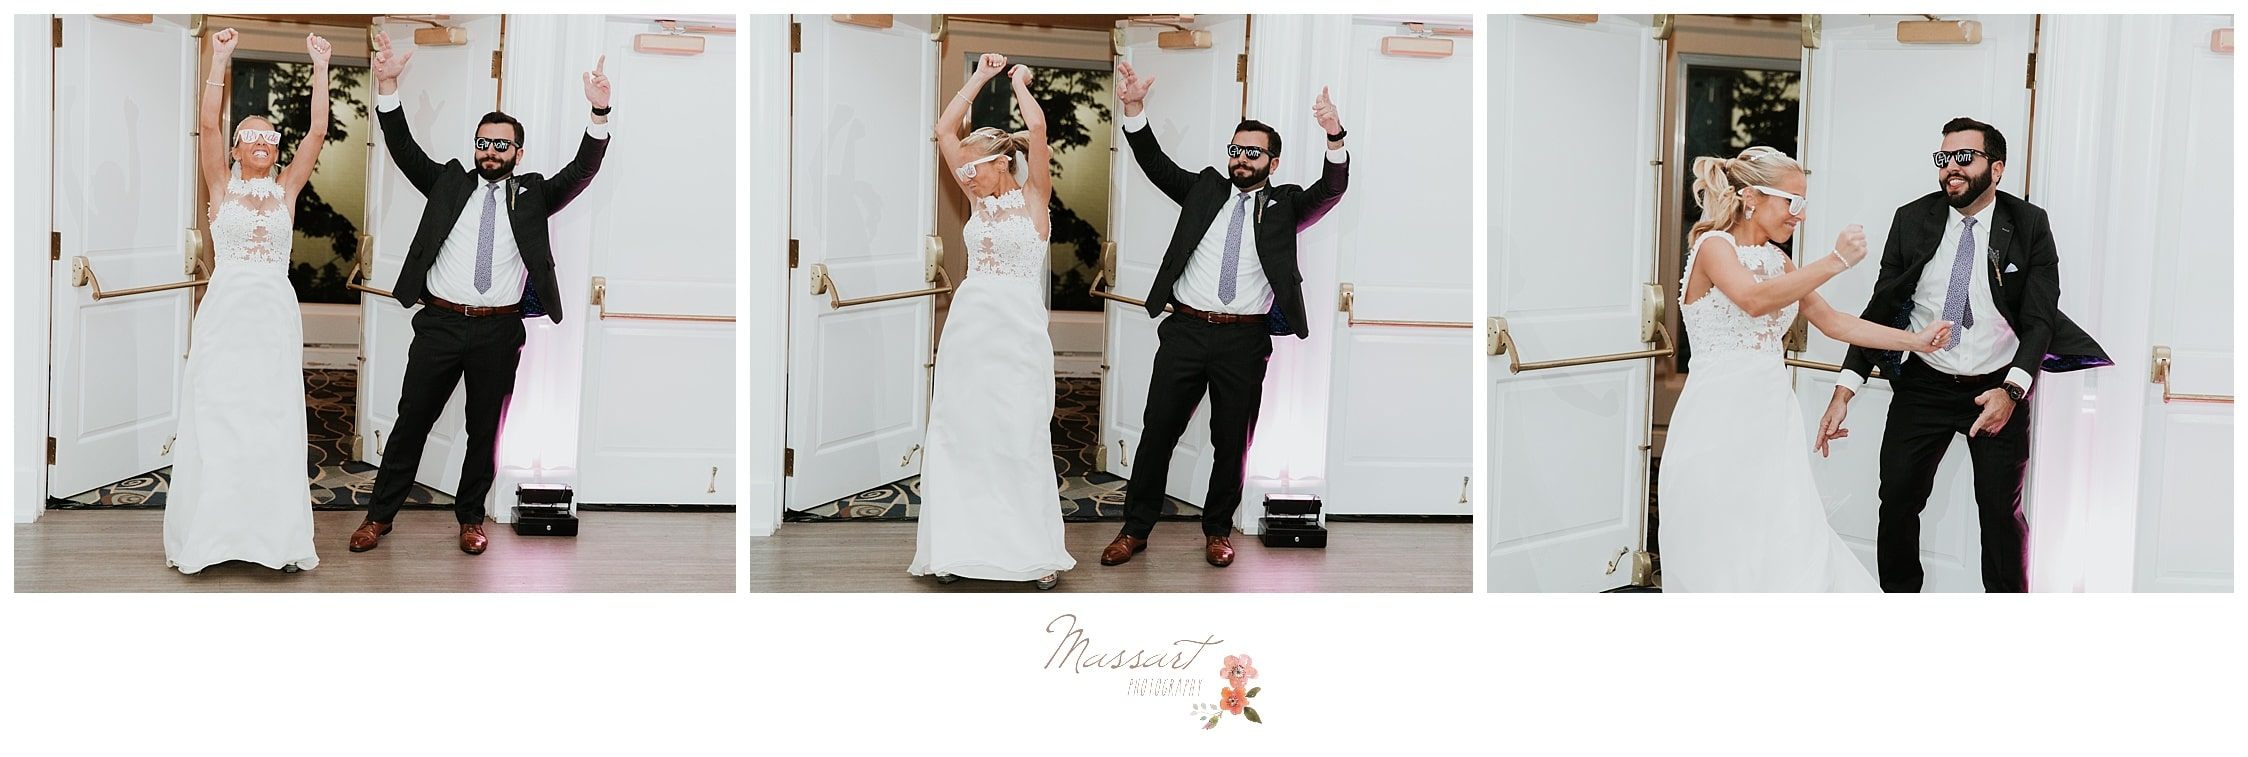 Bride and groom dancing into their wedding reception photographed by Massart Photography Rhode Island